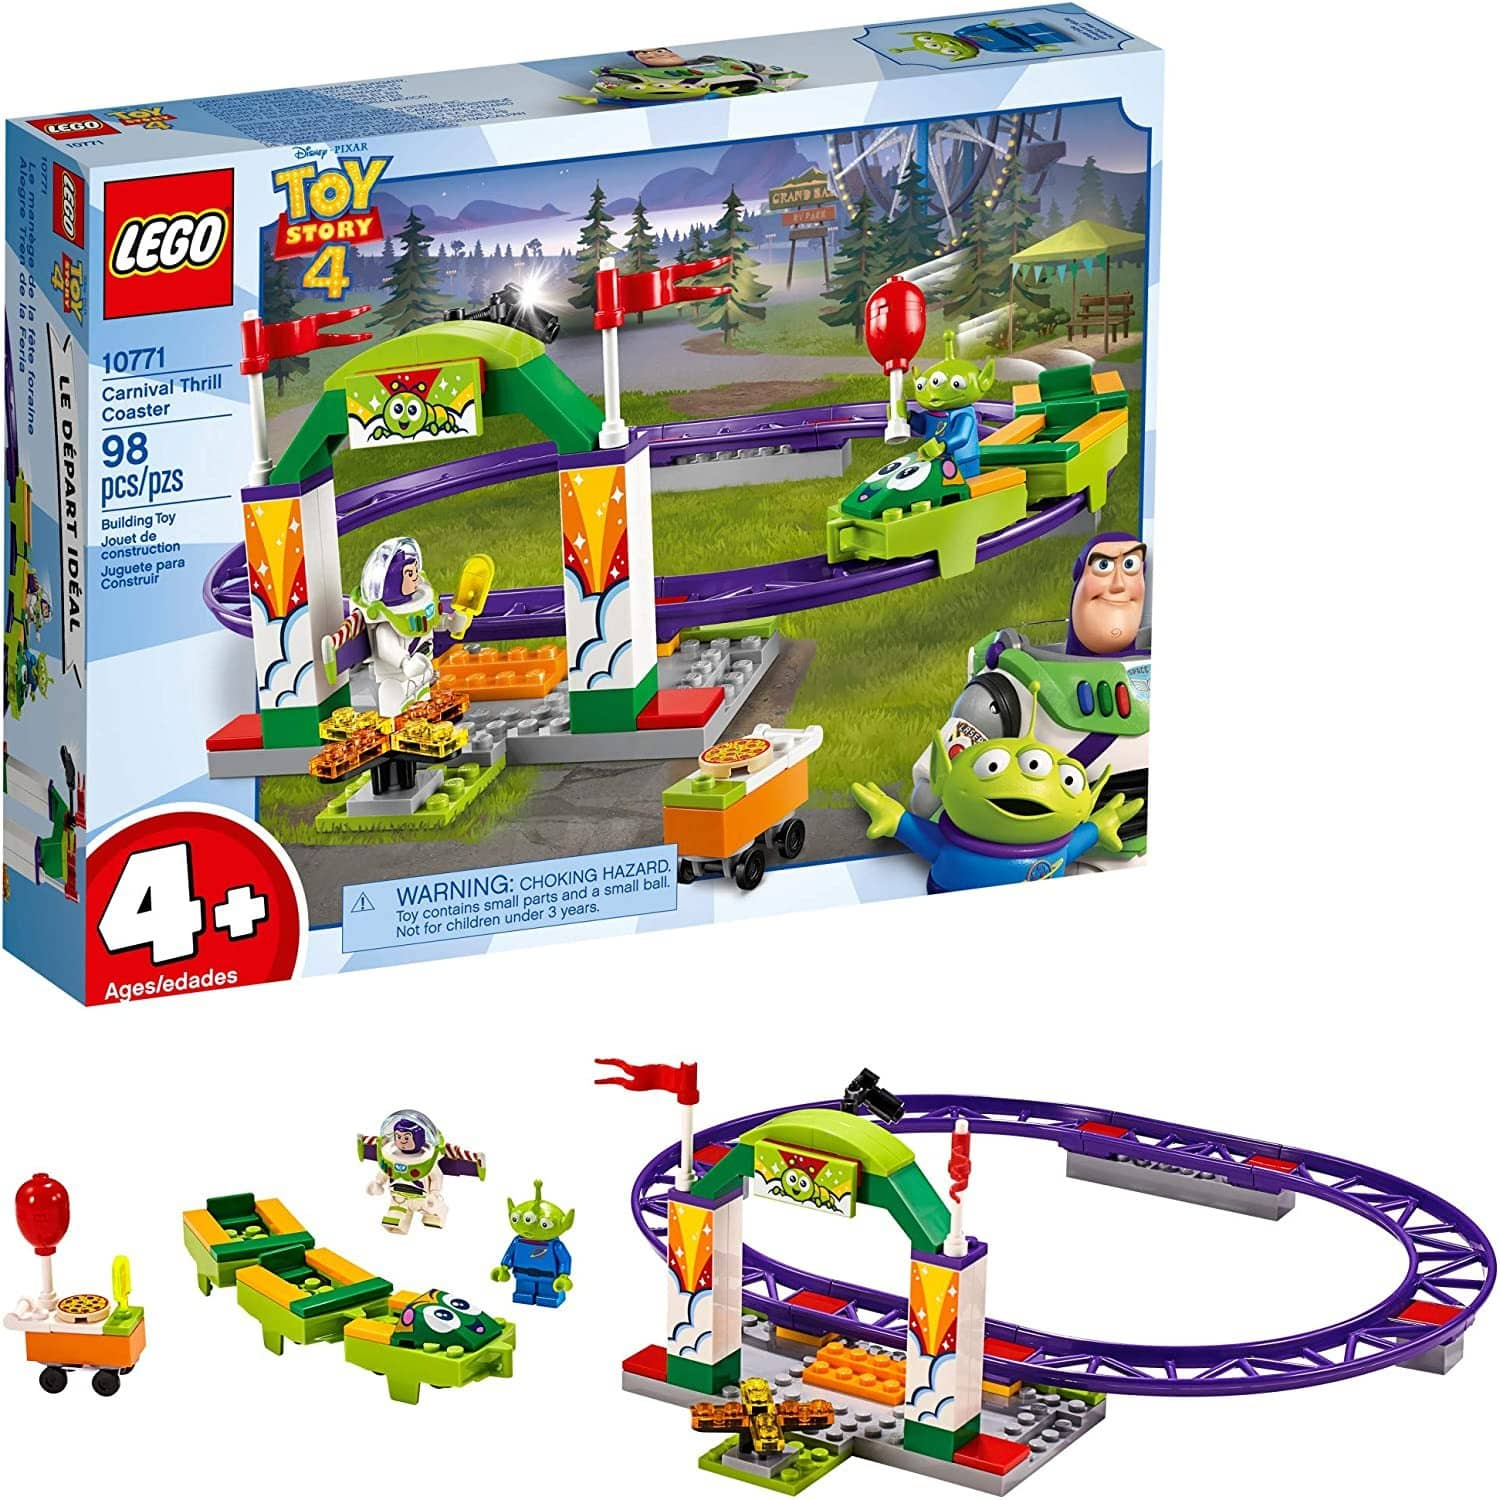 Lego | Disney Pixar's Toy Story 4 Carnival Thrill Coaster 10771 Building Kit (98 Pieces)-Kidding Around NYC